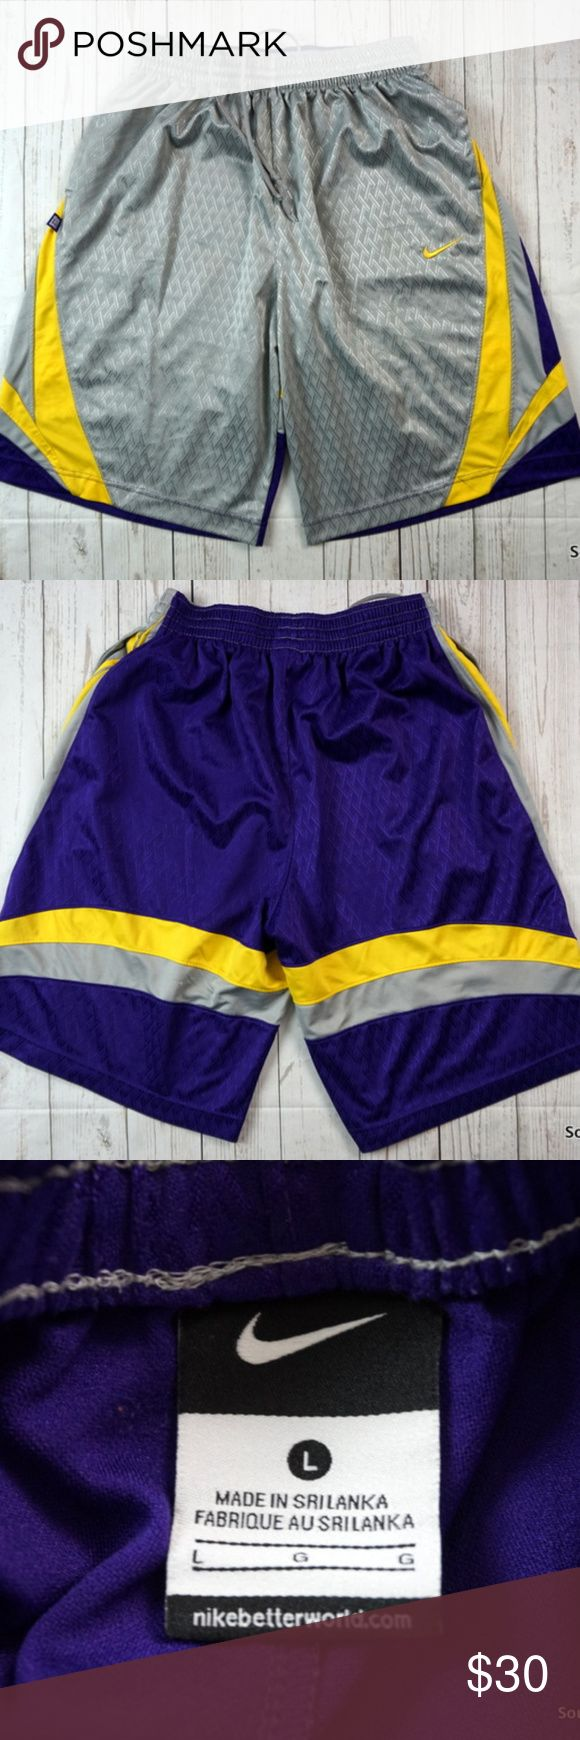 "Nike Basketball Shorts Silver Purple Yellow Kobe Brand: Nike Size: Men's Large Material: Polyester  Detailed Measurements: (Front Side of Garment has been measured laying flat on a table)  Waist:             26"" inches  (Elastic Stretch Drawstring Waist) Inseam:          12"" inches Length:           24"" inches  Ships in 1 business day or less from a clean and smoke free home. Nike Shorts Athletic"